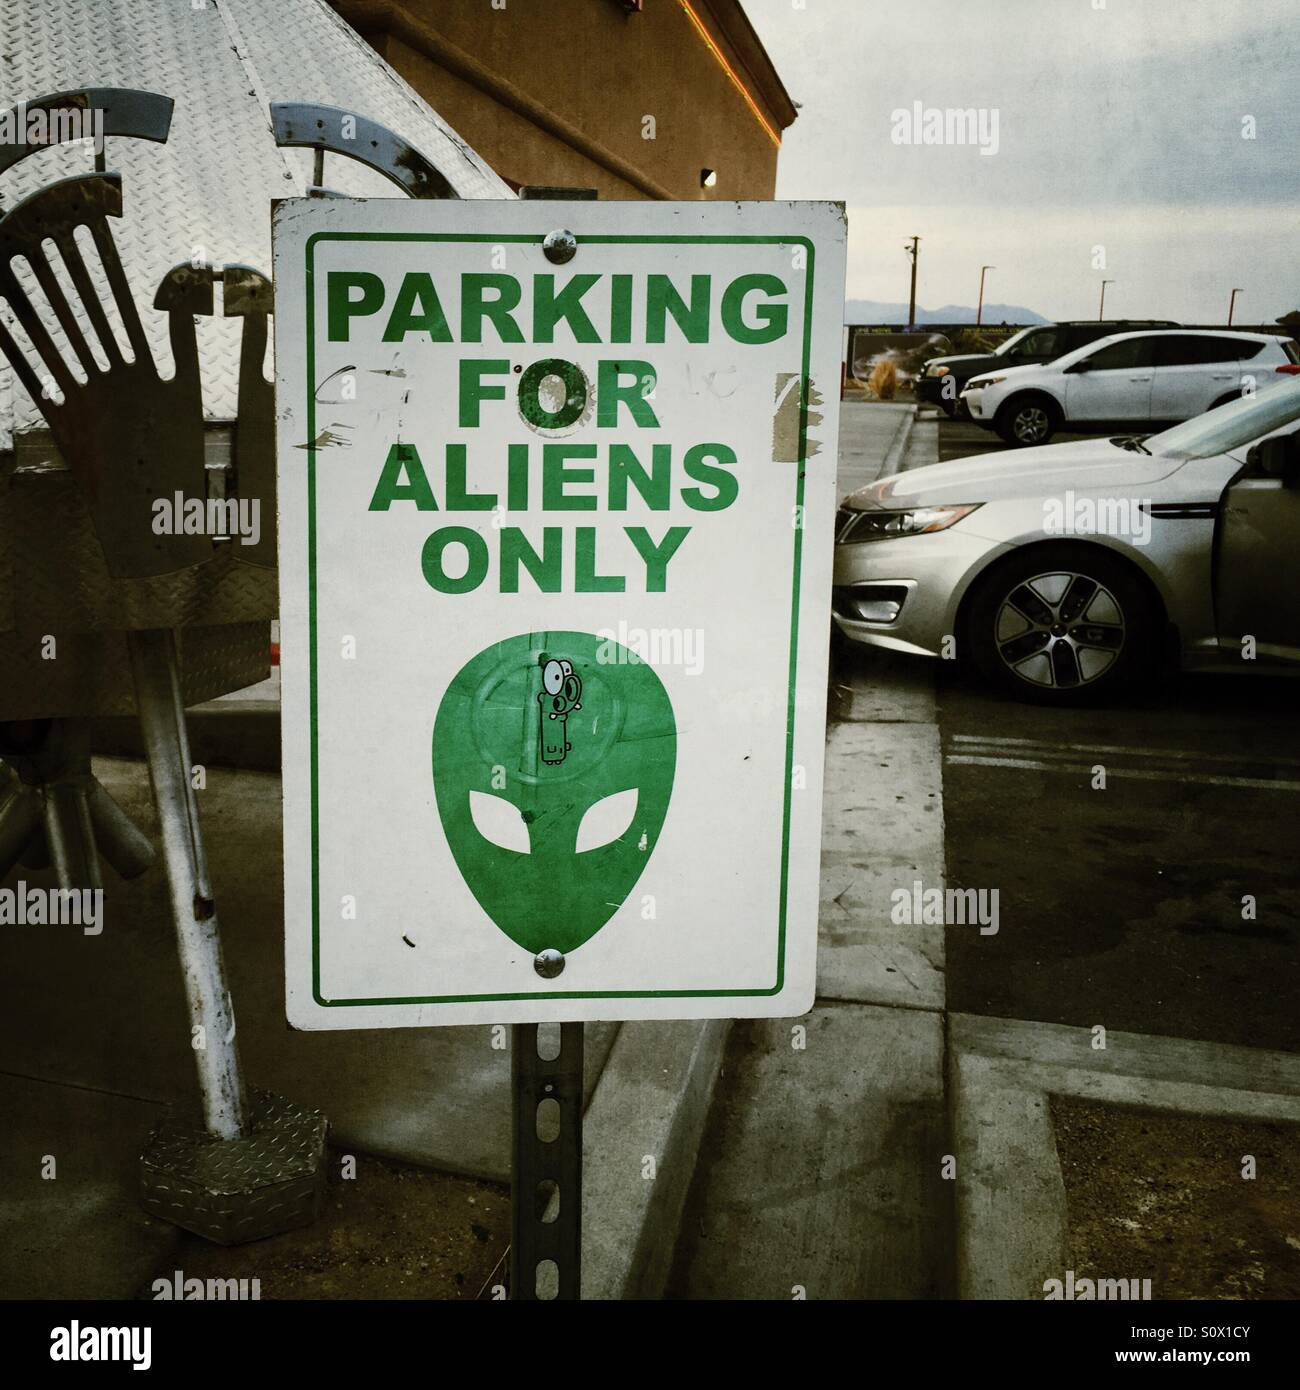 Parking is for Aliens Only - Stock Image